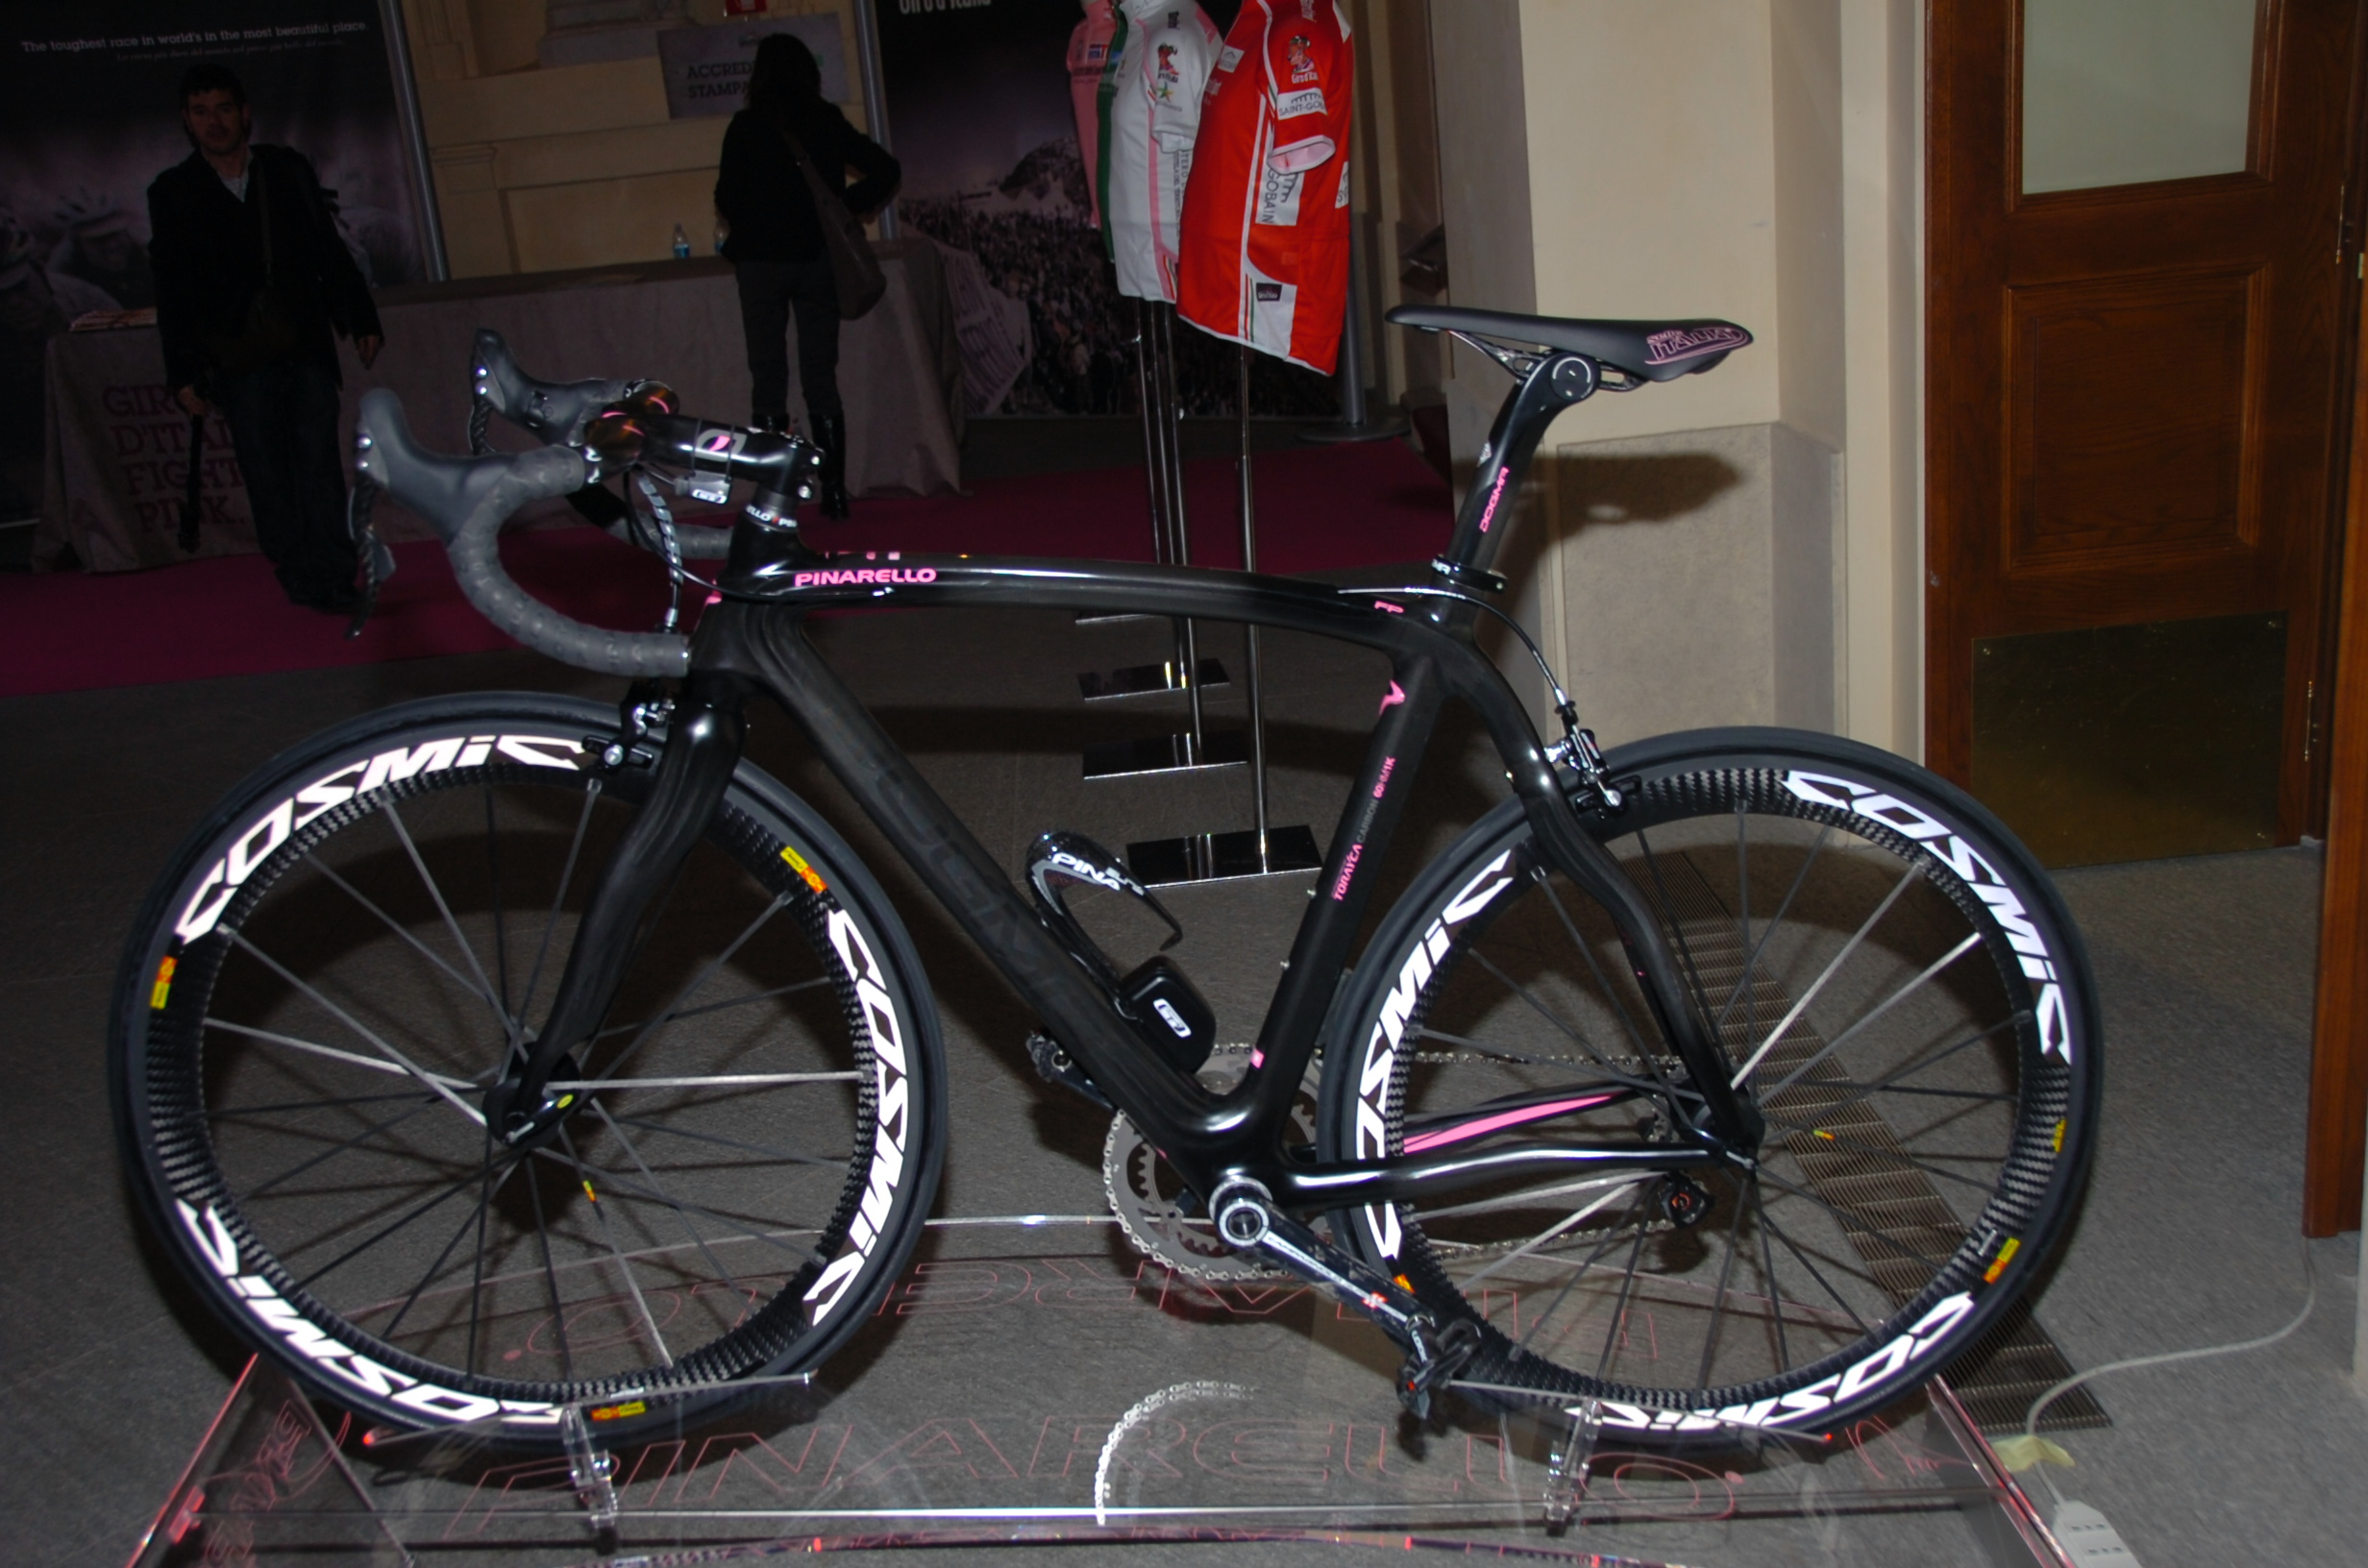 2011 Giro d&#039;Italia Presentation - Bike with Campy Electric?